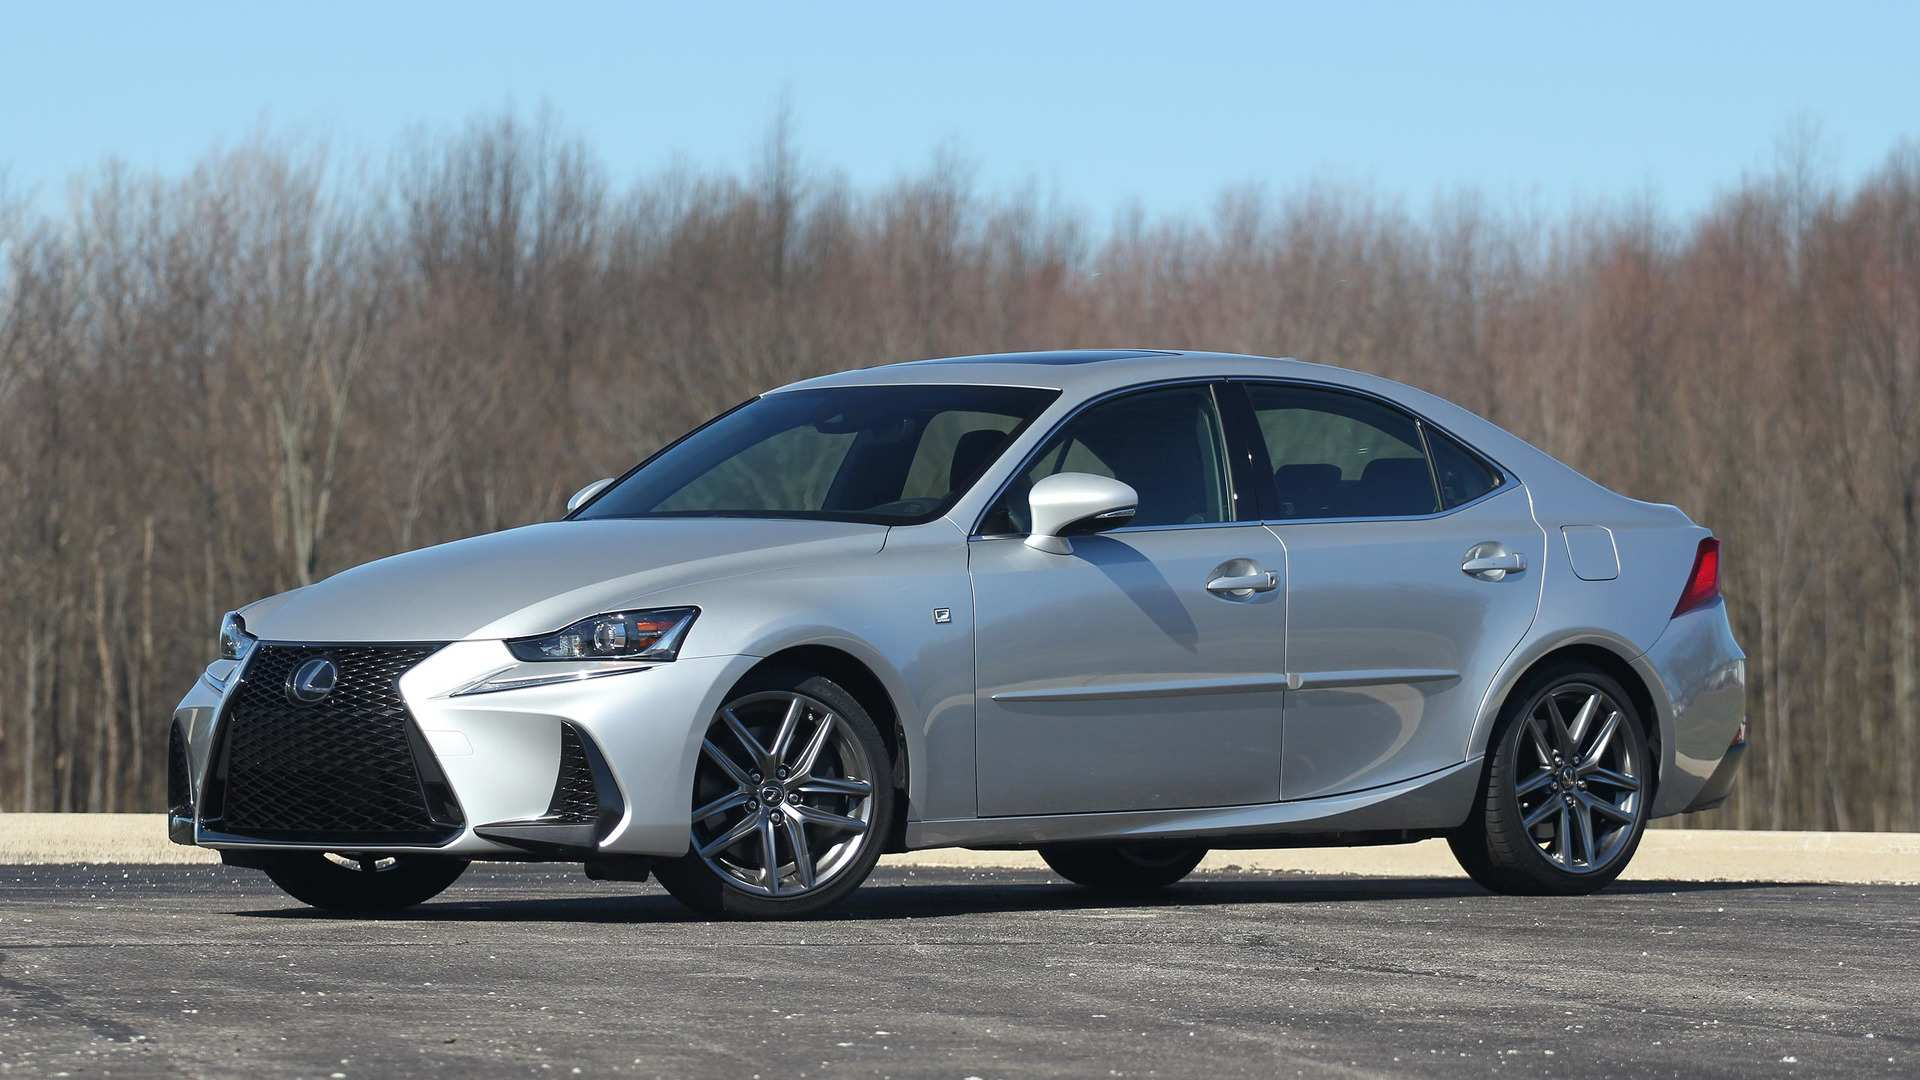 88 New Lexus Is 2020 Price And Release Date